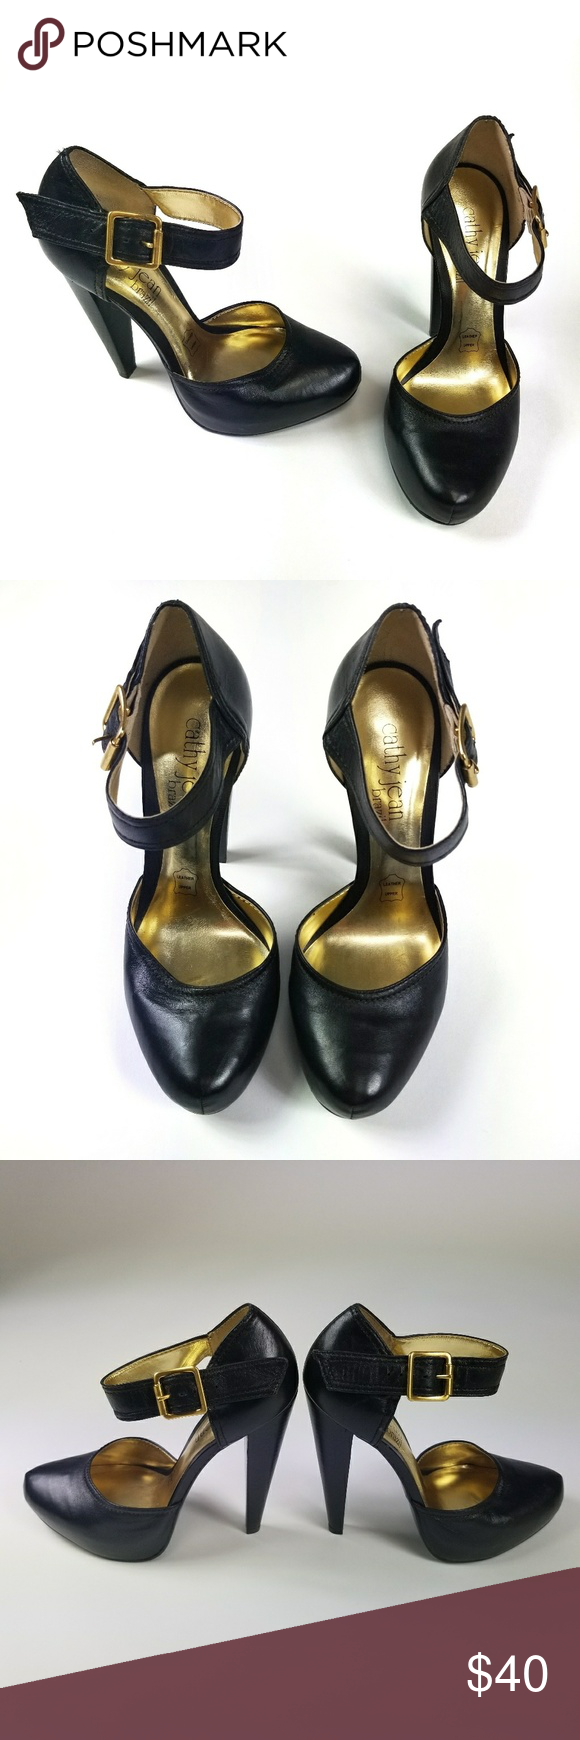 a5232eca9e Cathy Jean Black Leather Pumps Size 7.5 Never worn! Black leather close  toed platform cone heels with ankle strap, gold buckle. Made in Brazil.